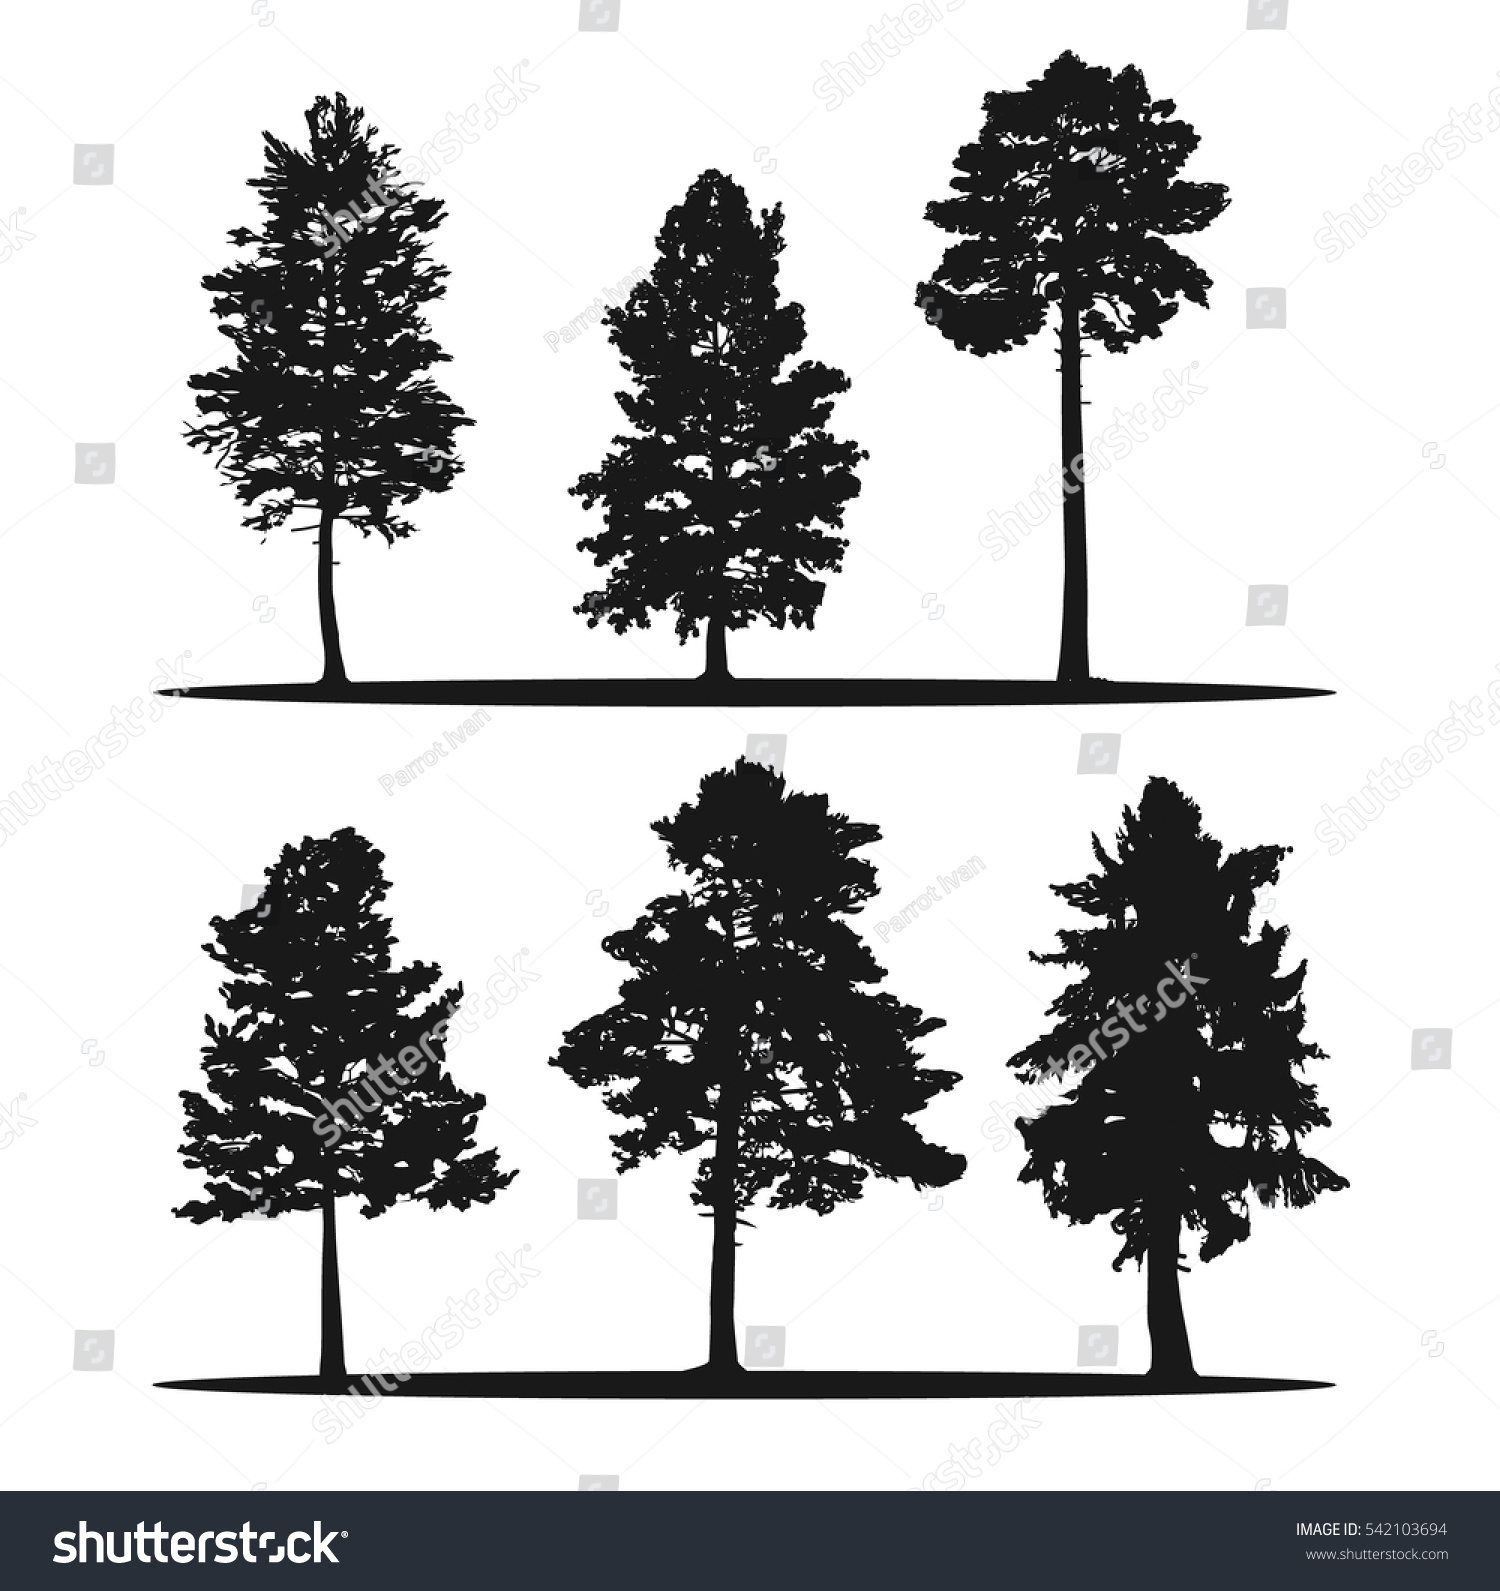 Tree Silhouettes Red Cedar Siberian Pine Stock Vector ...